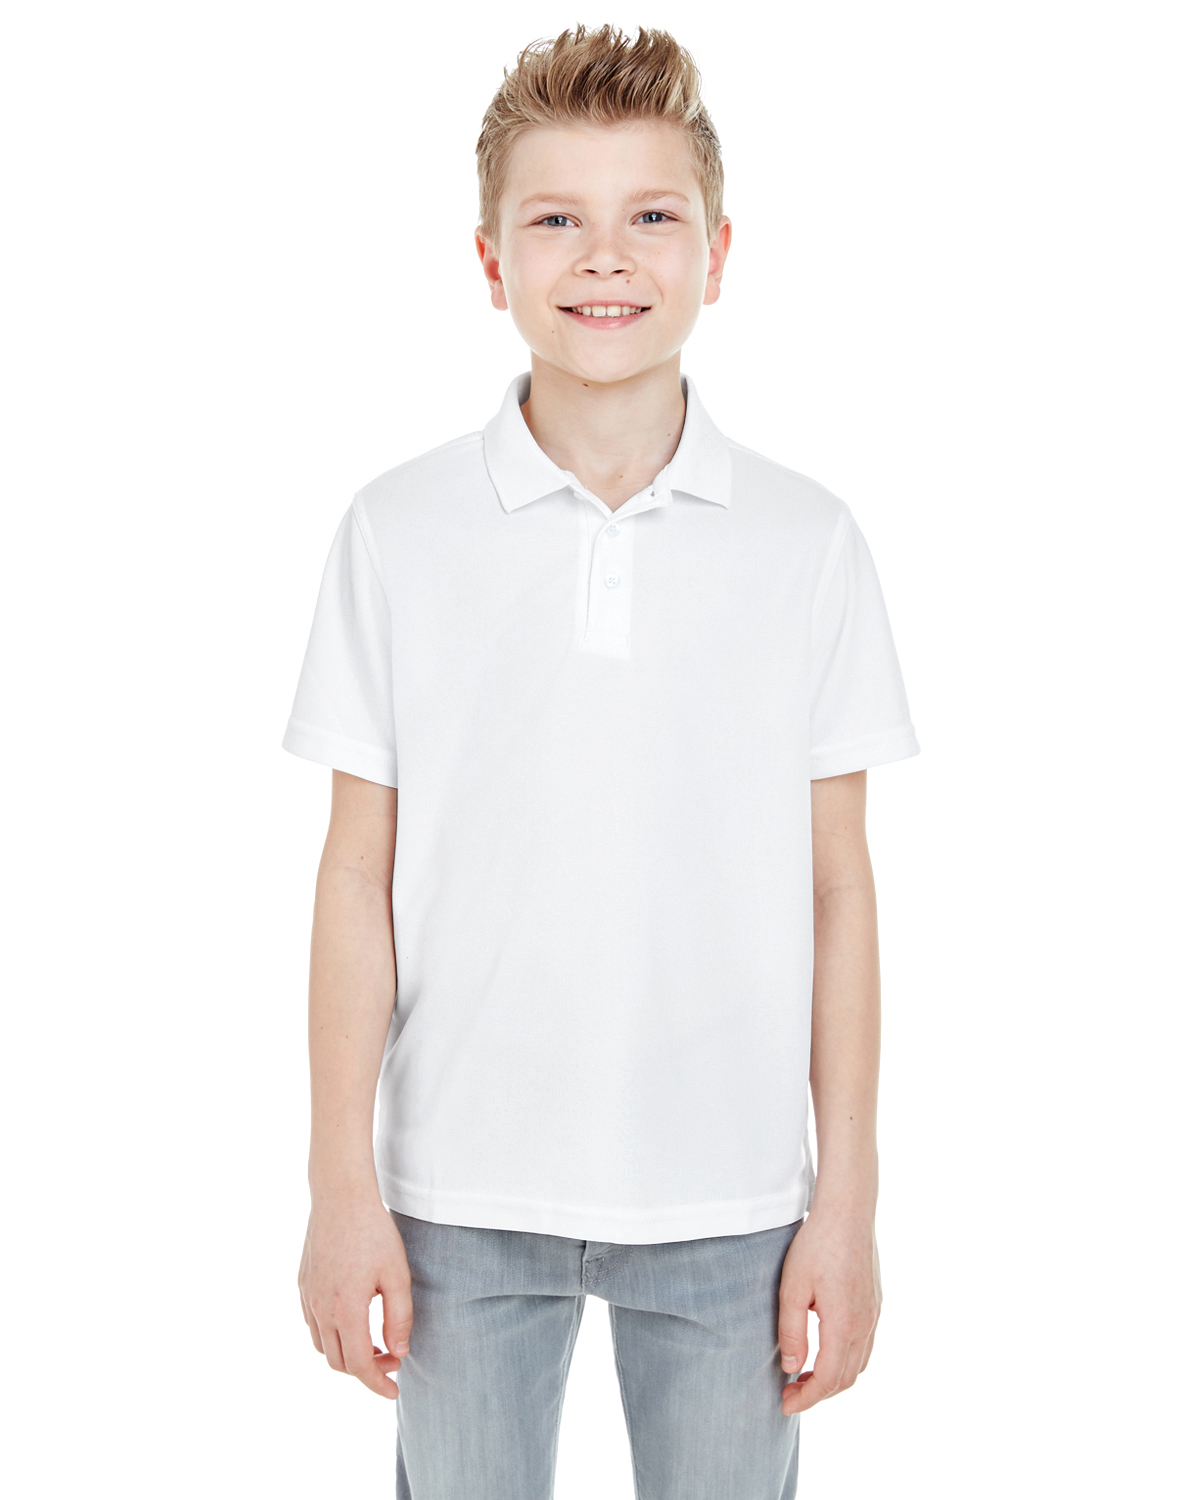 Ultra Club 8210Y - Youth Cool & Dry Mesh Pique Polo